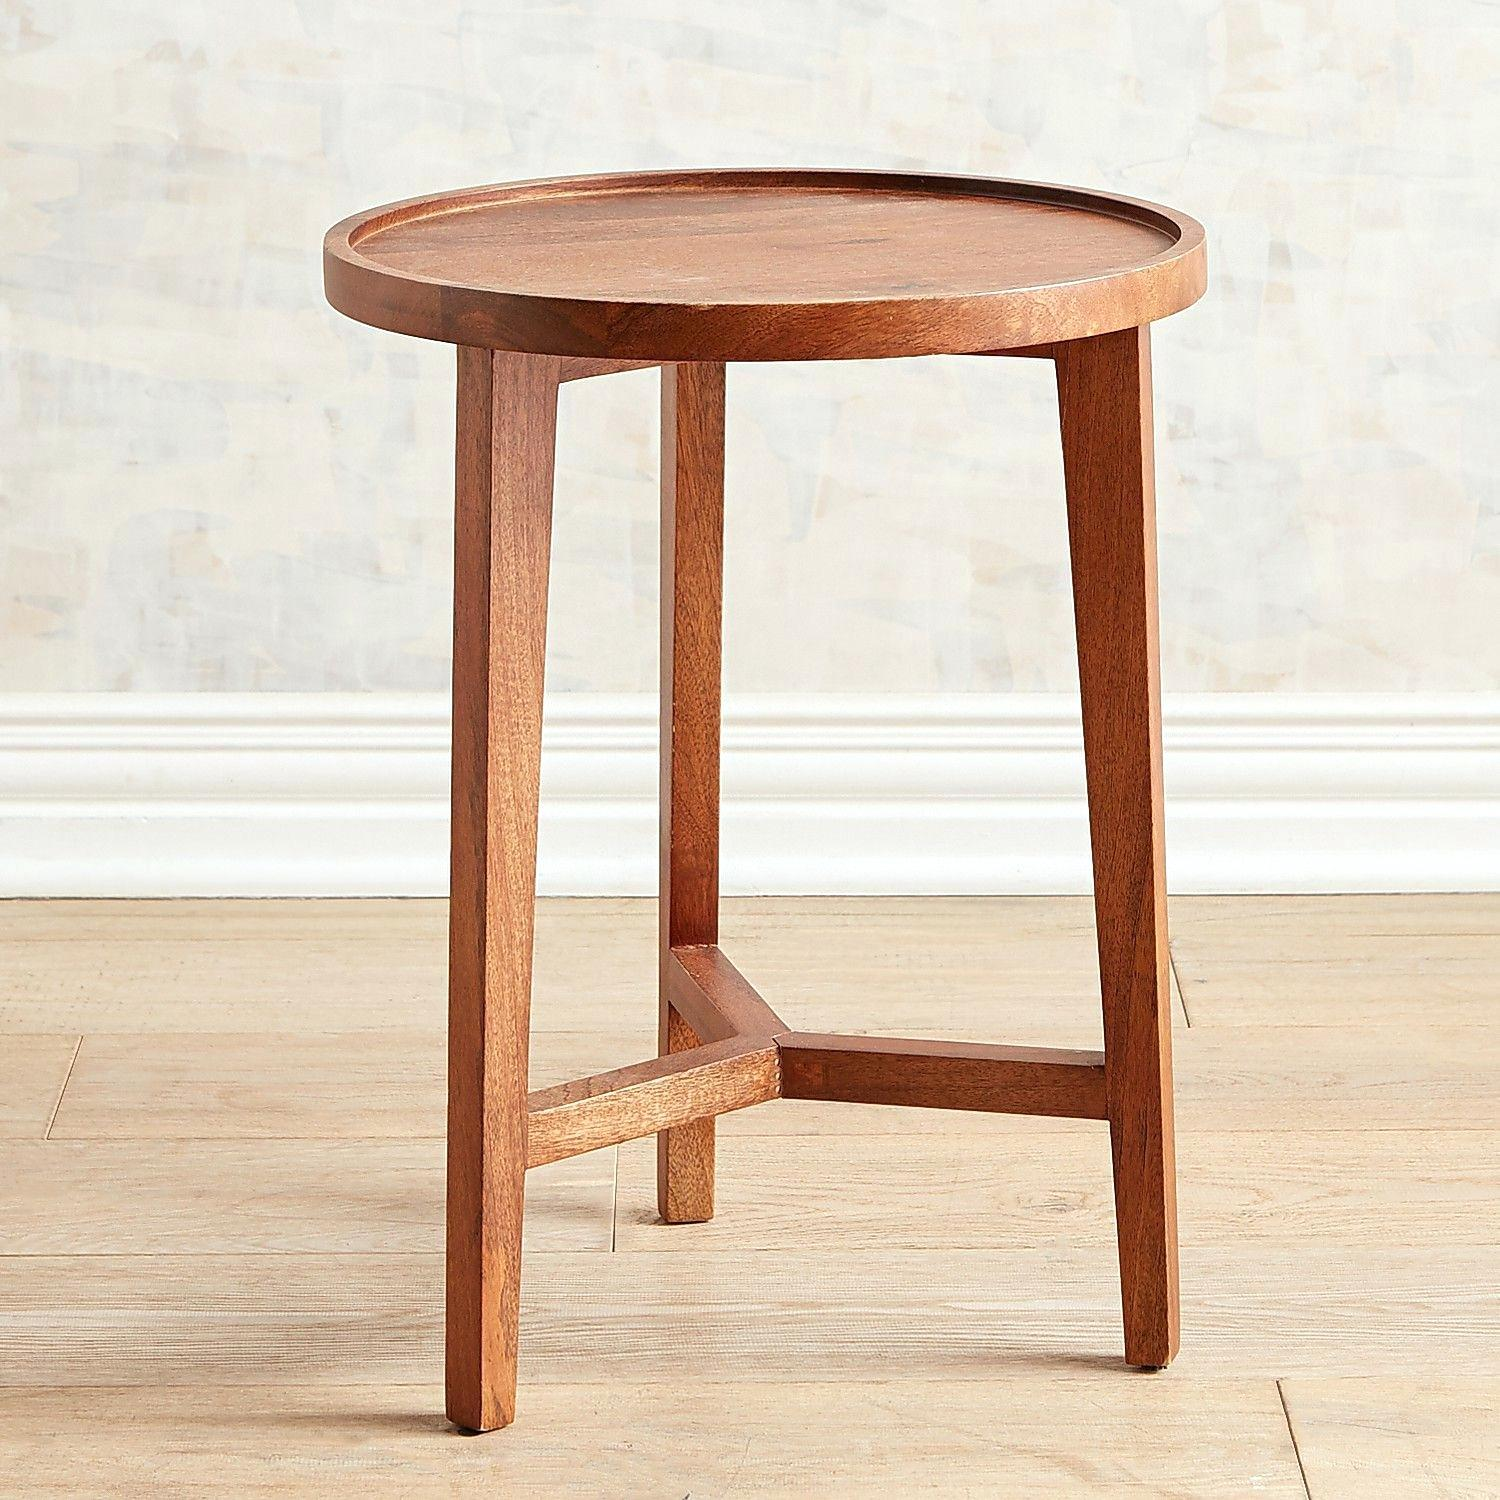 save this item pier accent tables mosaic table lavorochogan info modern zoom dining room chair styles chairside end tiffany dragonfly lamp fruit cocktail recipe glass round for